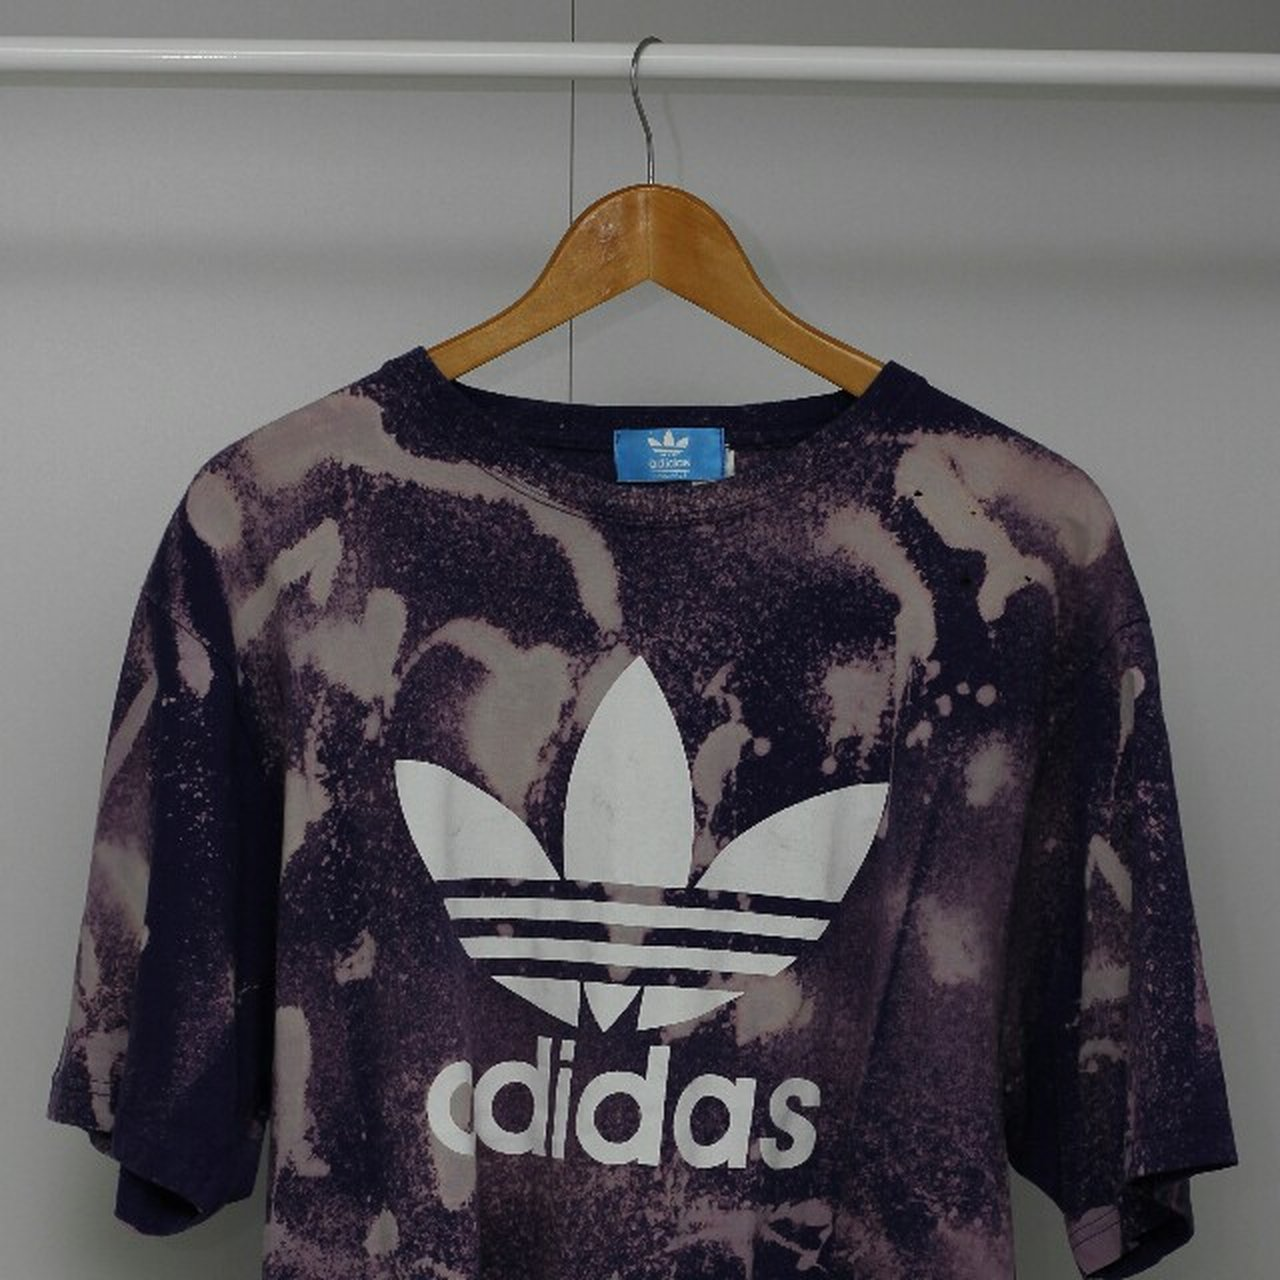 Distress The Holes Tshirt Depop Dye Tie On With Little Adidas Xl FOPqRwB